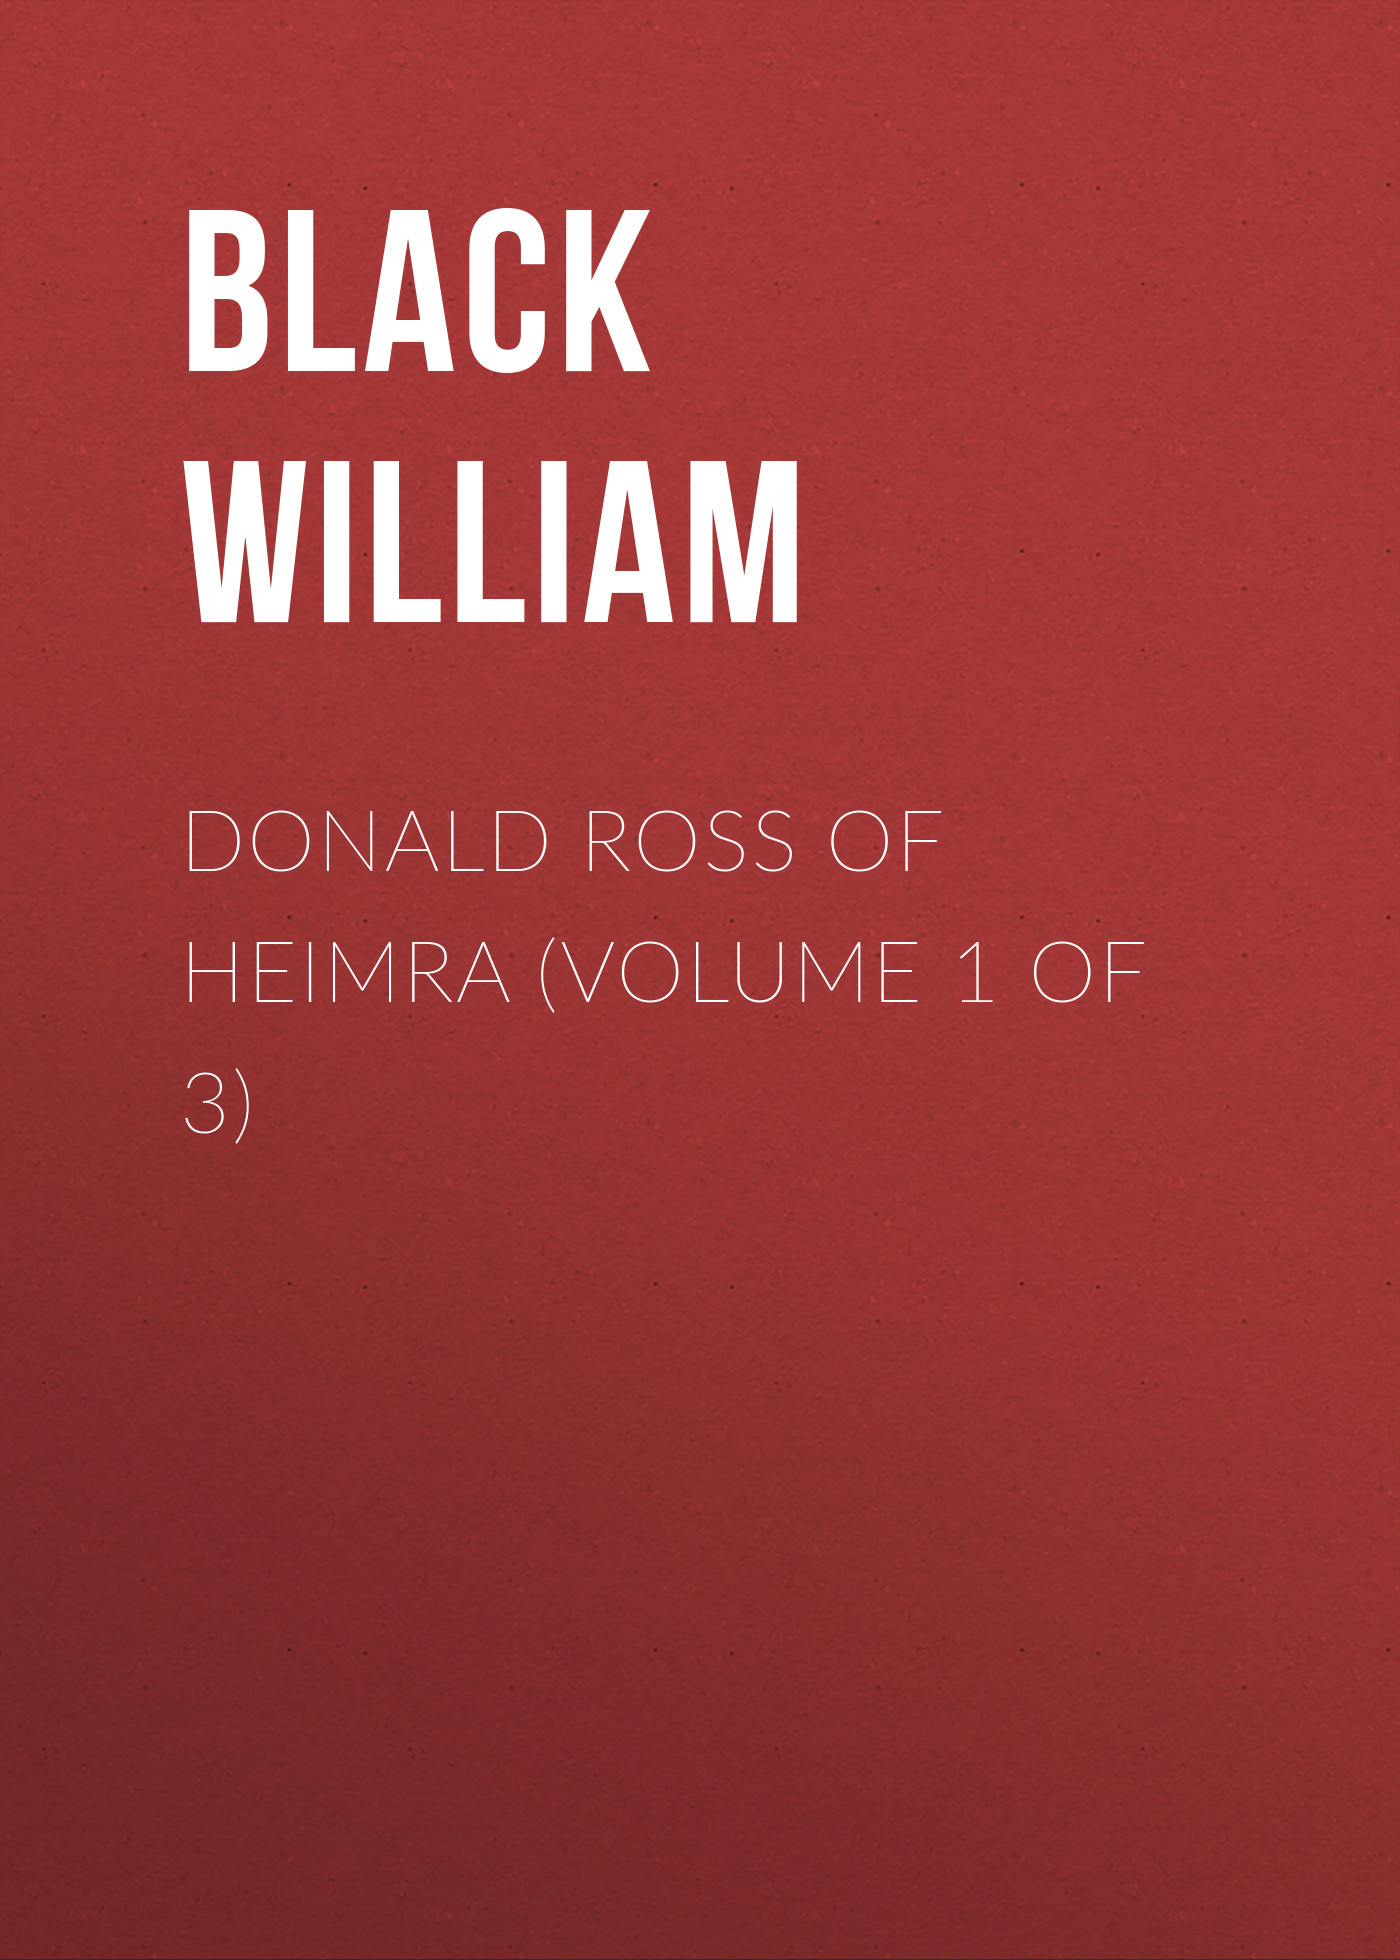 Black William Donald Ross of Heimra (Volume 1 of 3) цена